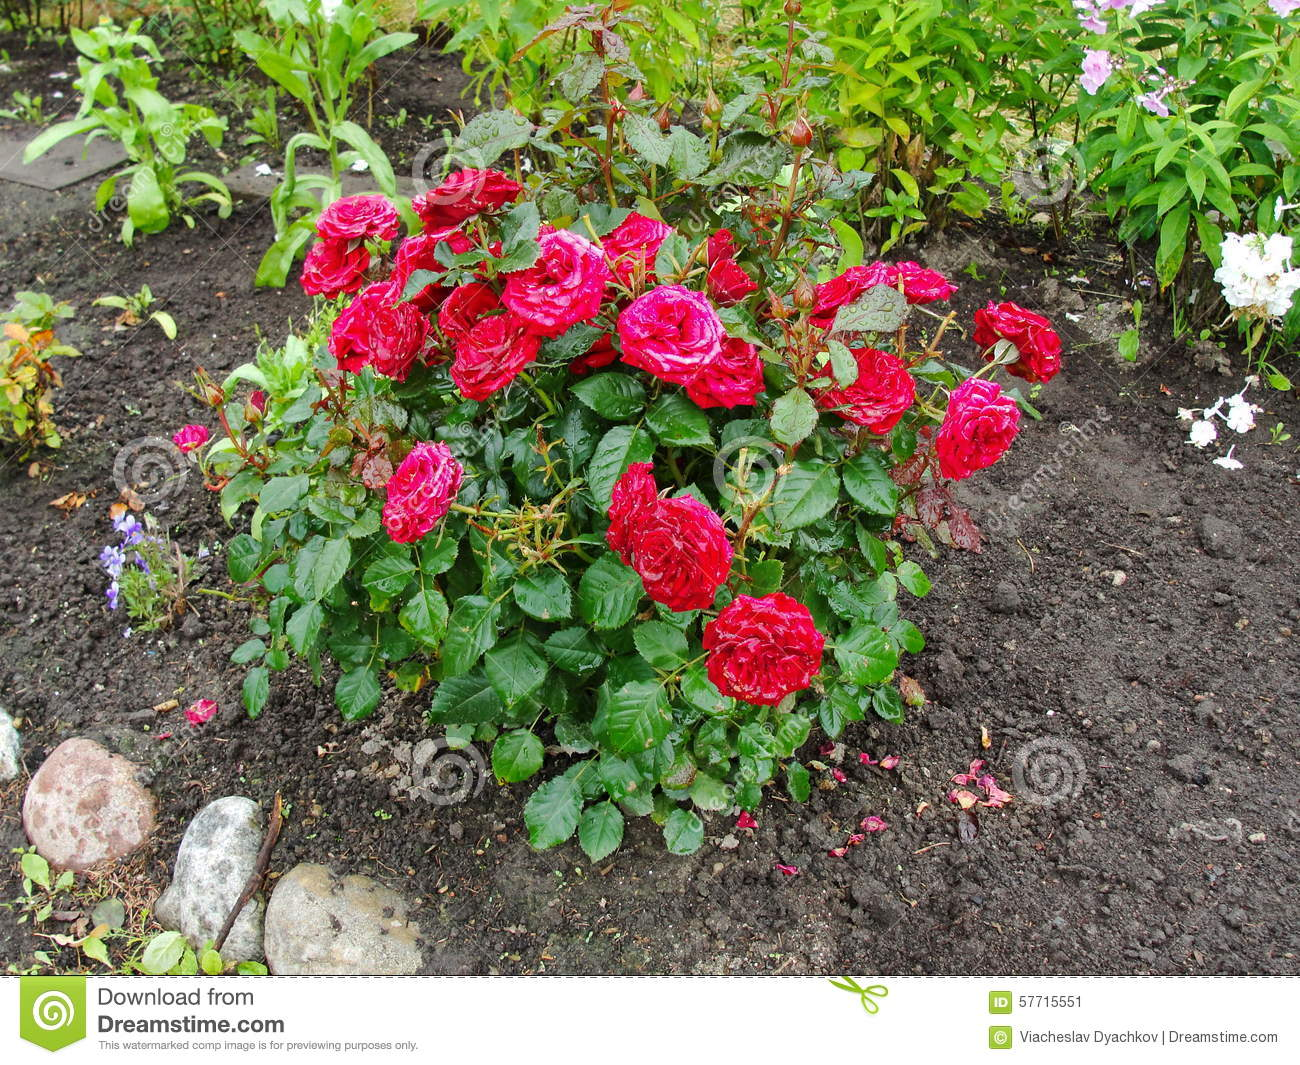 Awesome Royalty Free Stock Photo. Download Beautiful Decorative Flowers In The Summer  Garden.